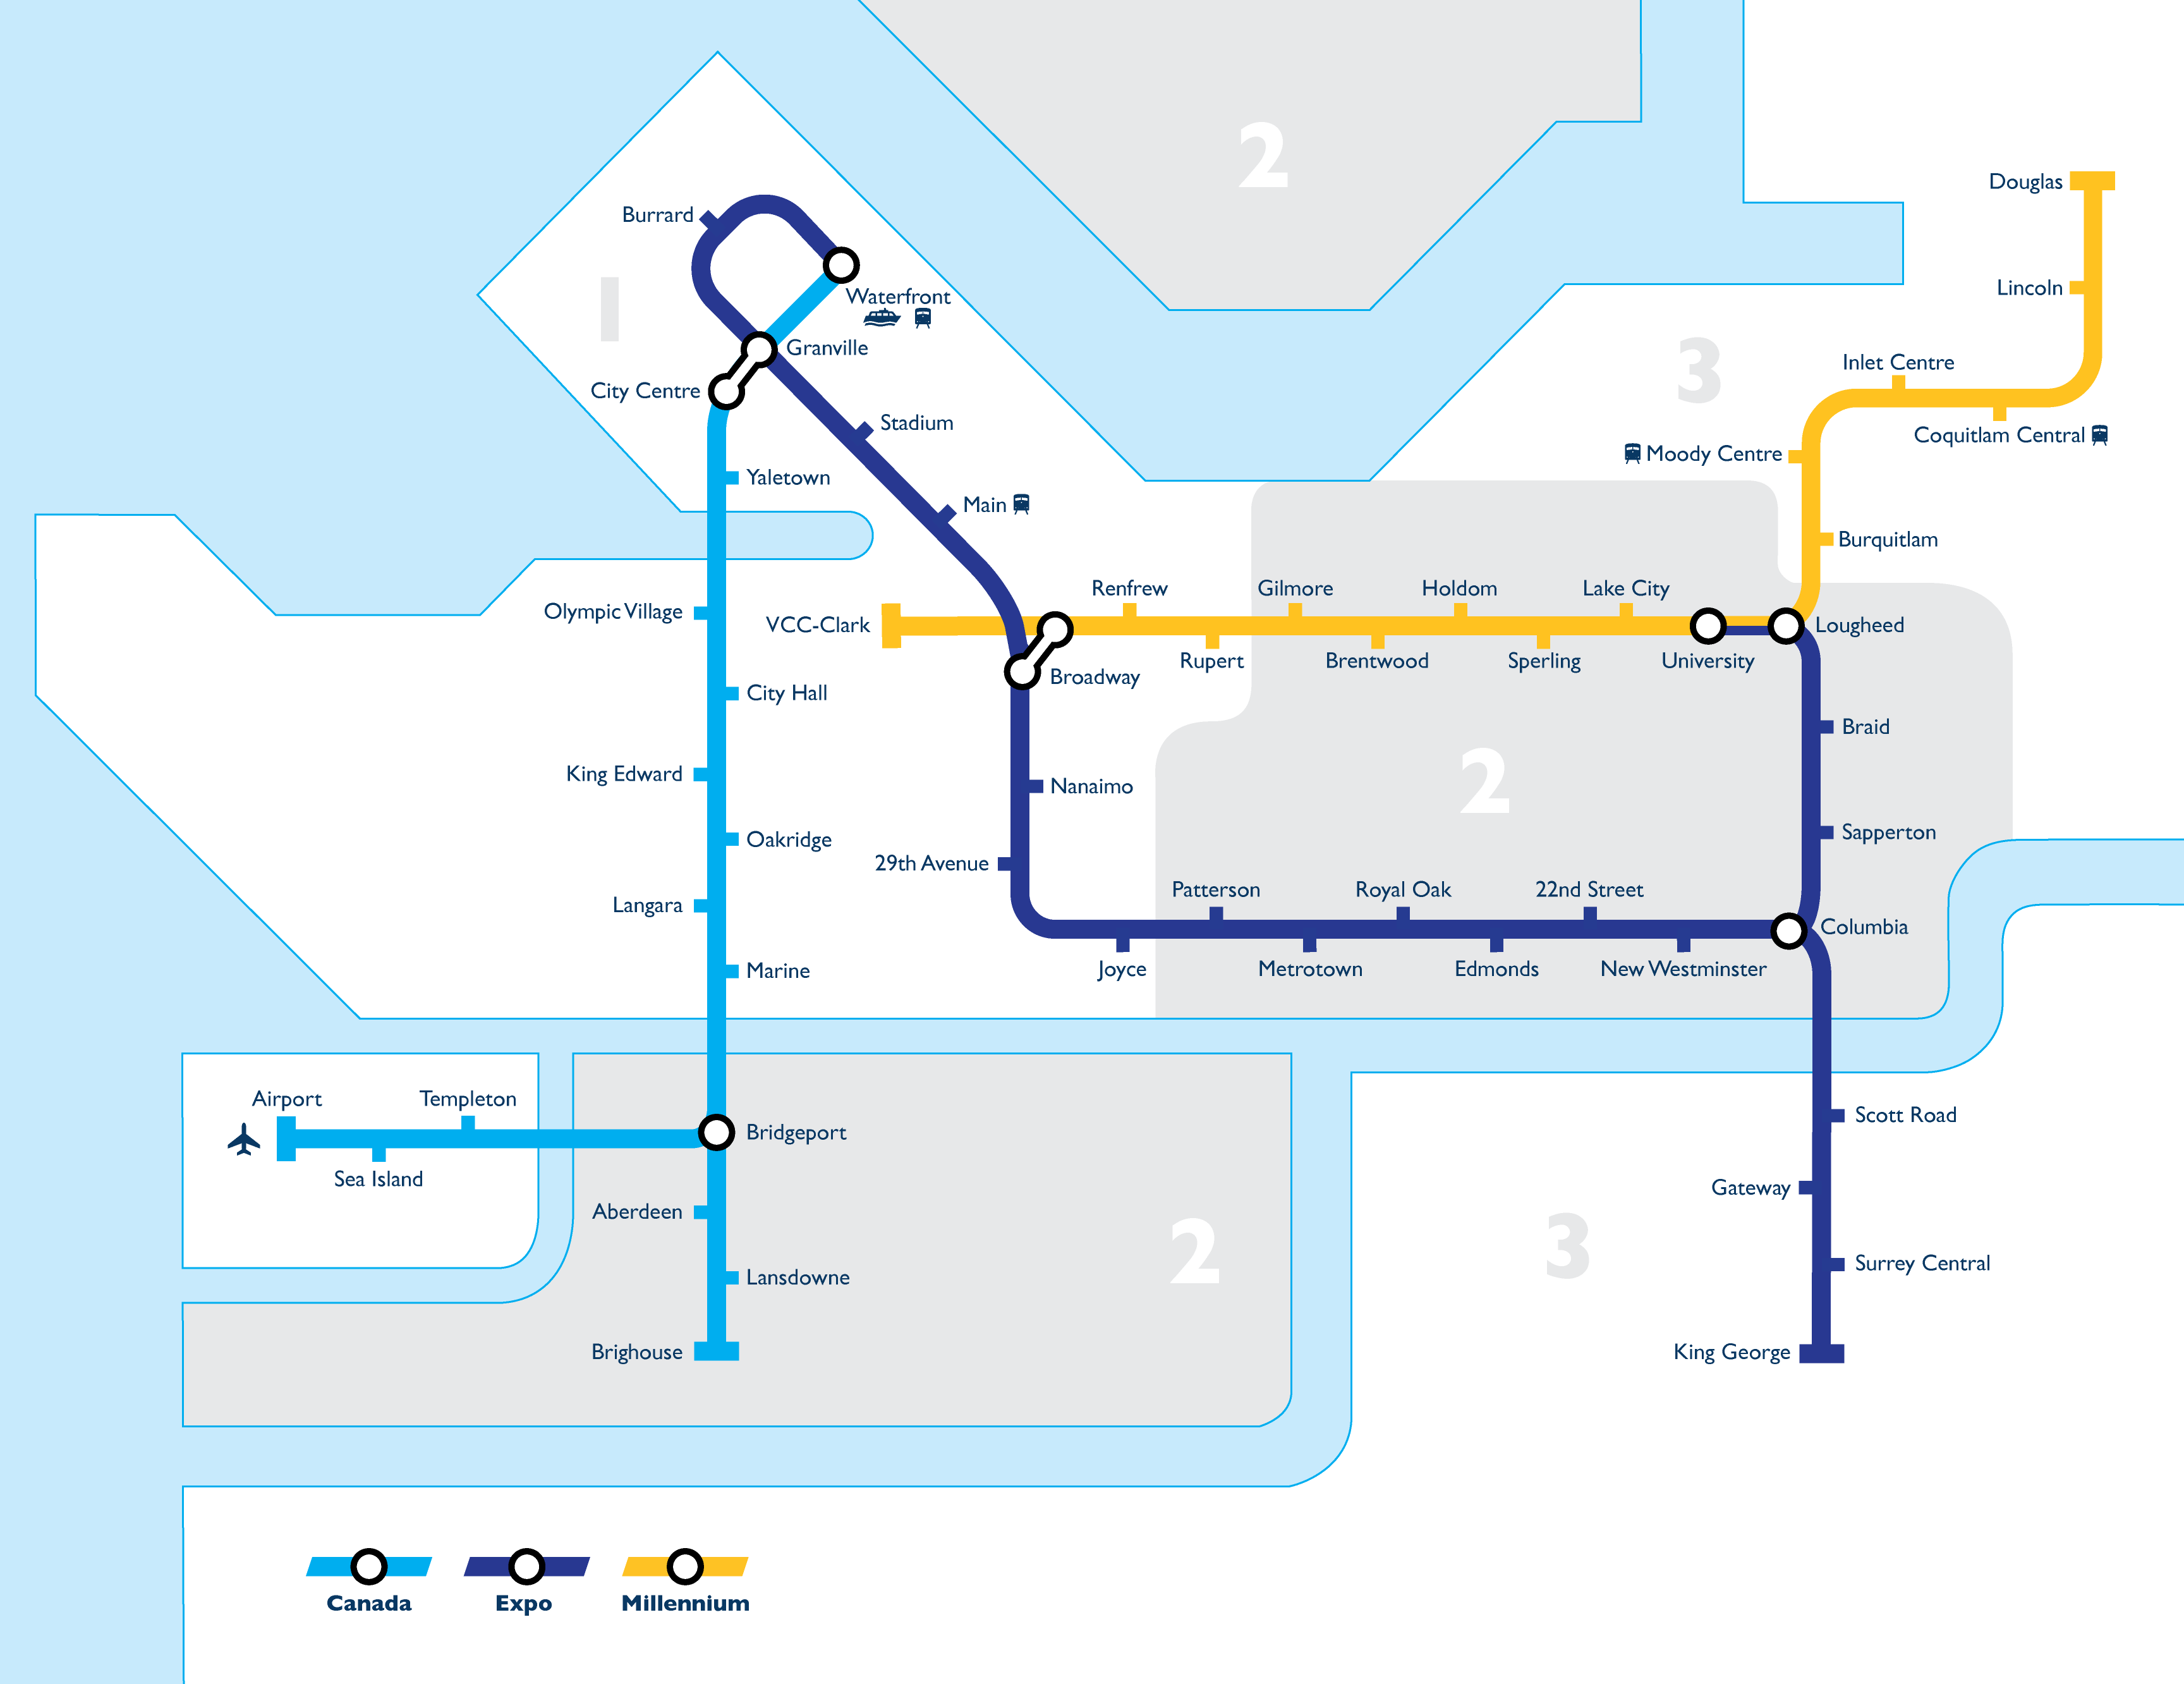 Vancouver Sky Train Map File:Vancouver Skytrain Map.png   Wikimedia Commons Vancouver Sky Train Map